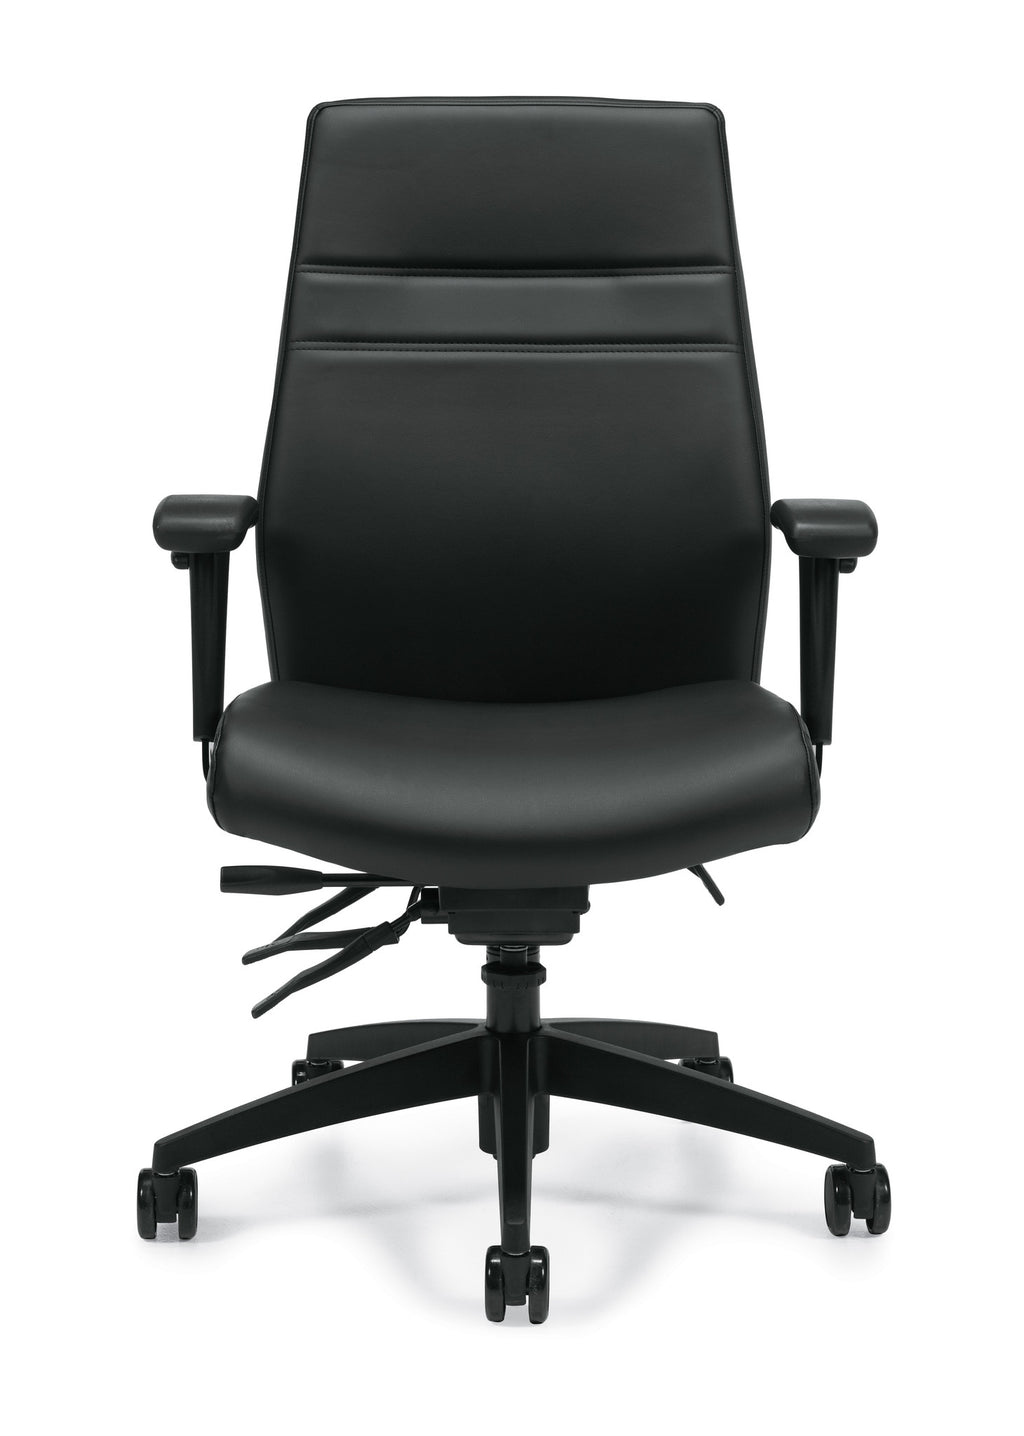 OTG 2913 Task Chair